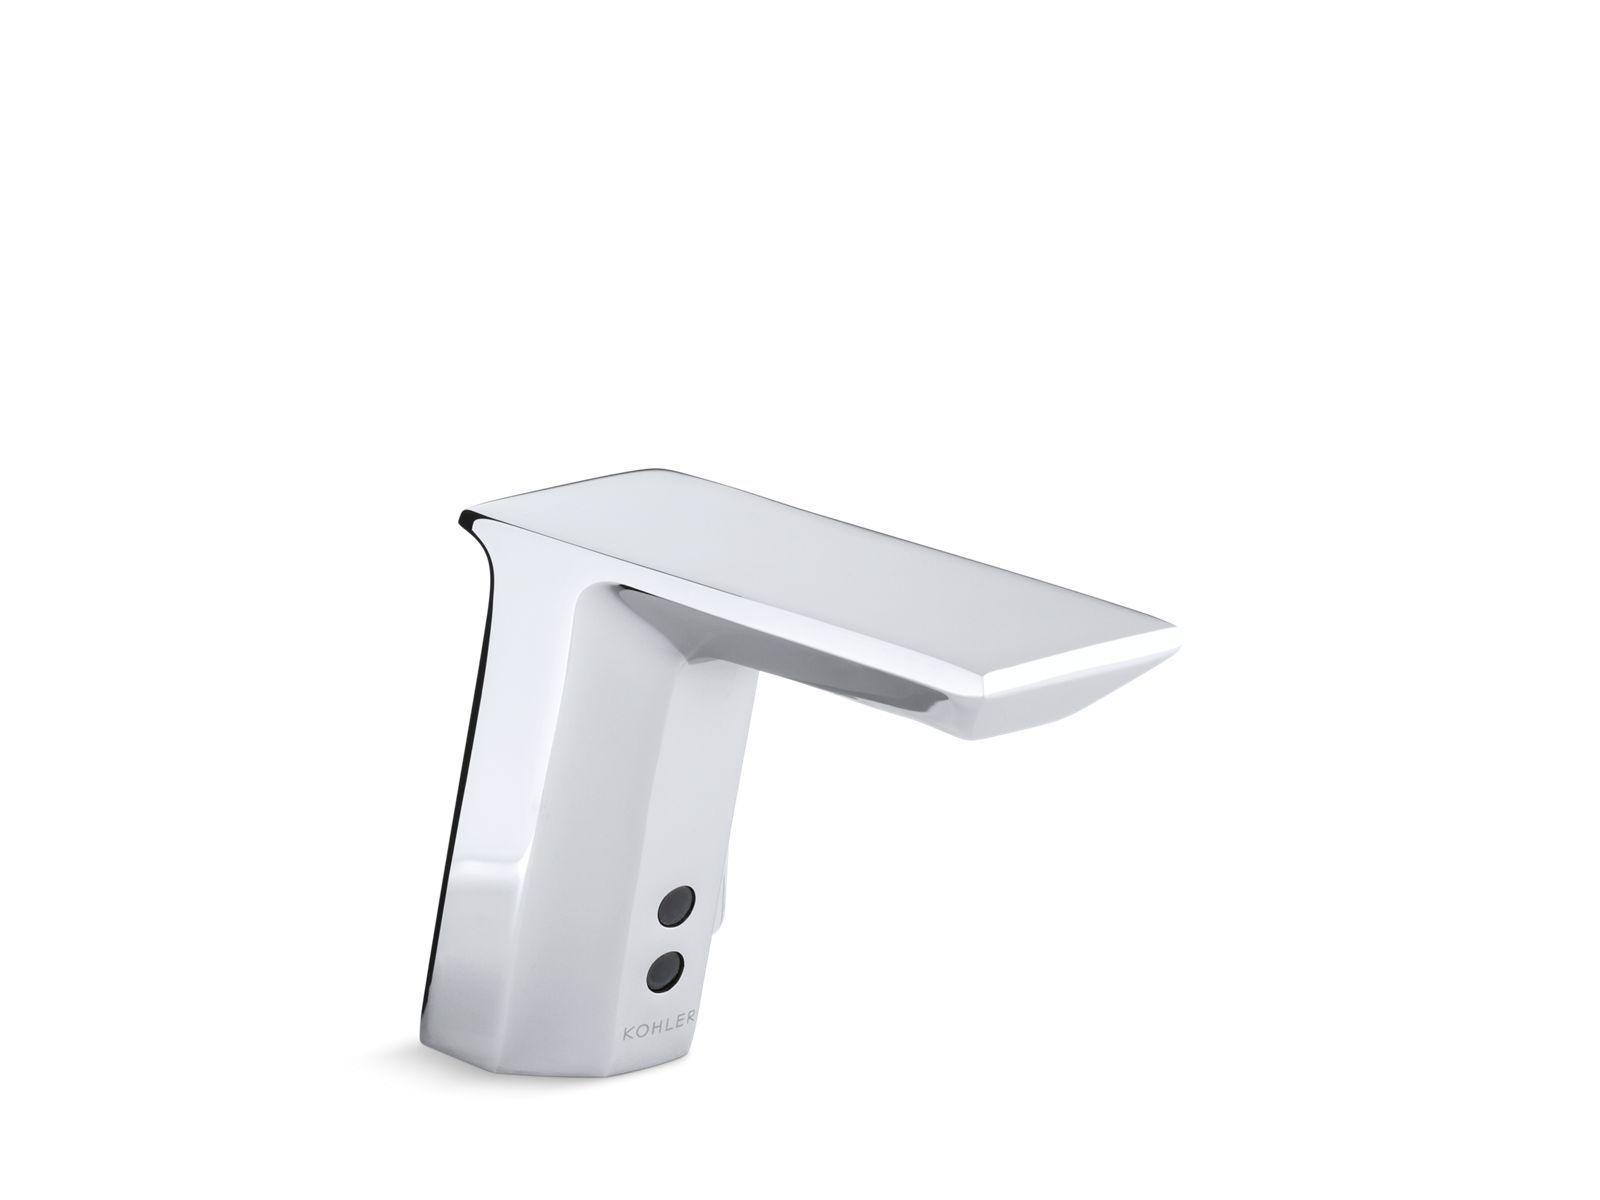 Geometric Single-Hole Touchless Hybrid Energy Cell-Powered Commercial Bathroom Sink Faucet with Insight Technology